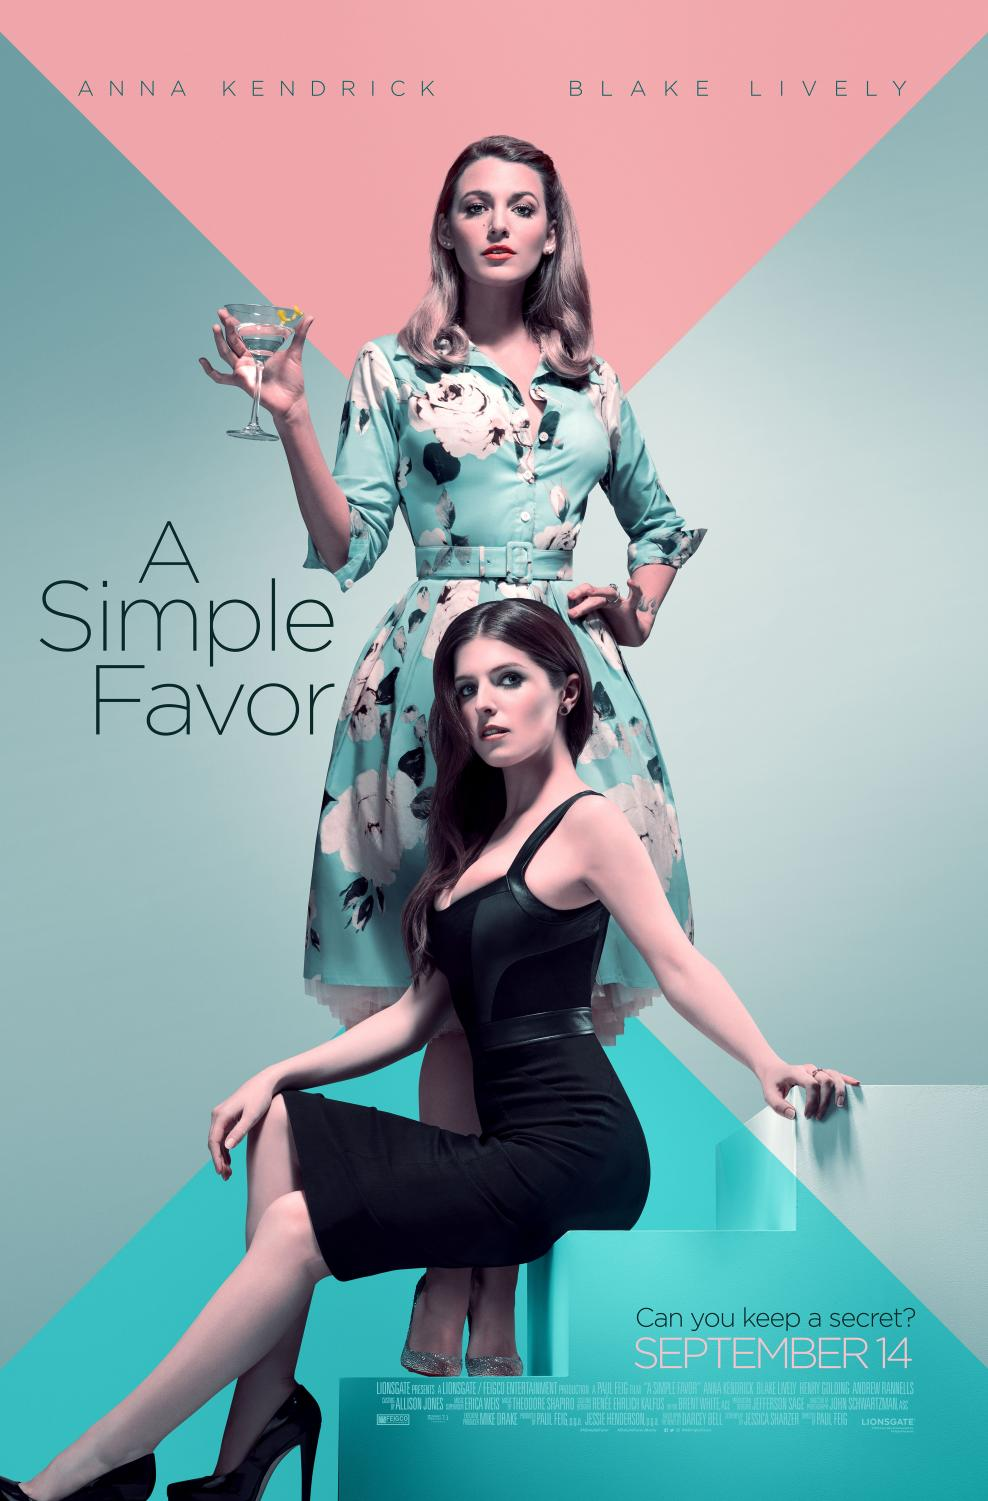 A simple favor starring Blake Lively and Anna Kendrick